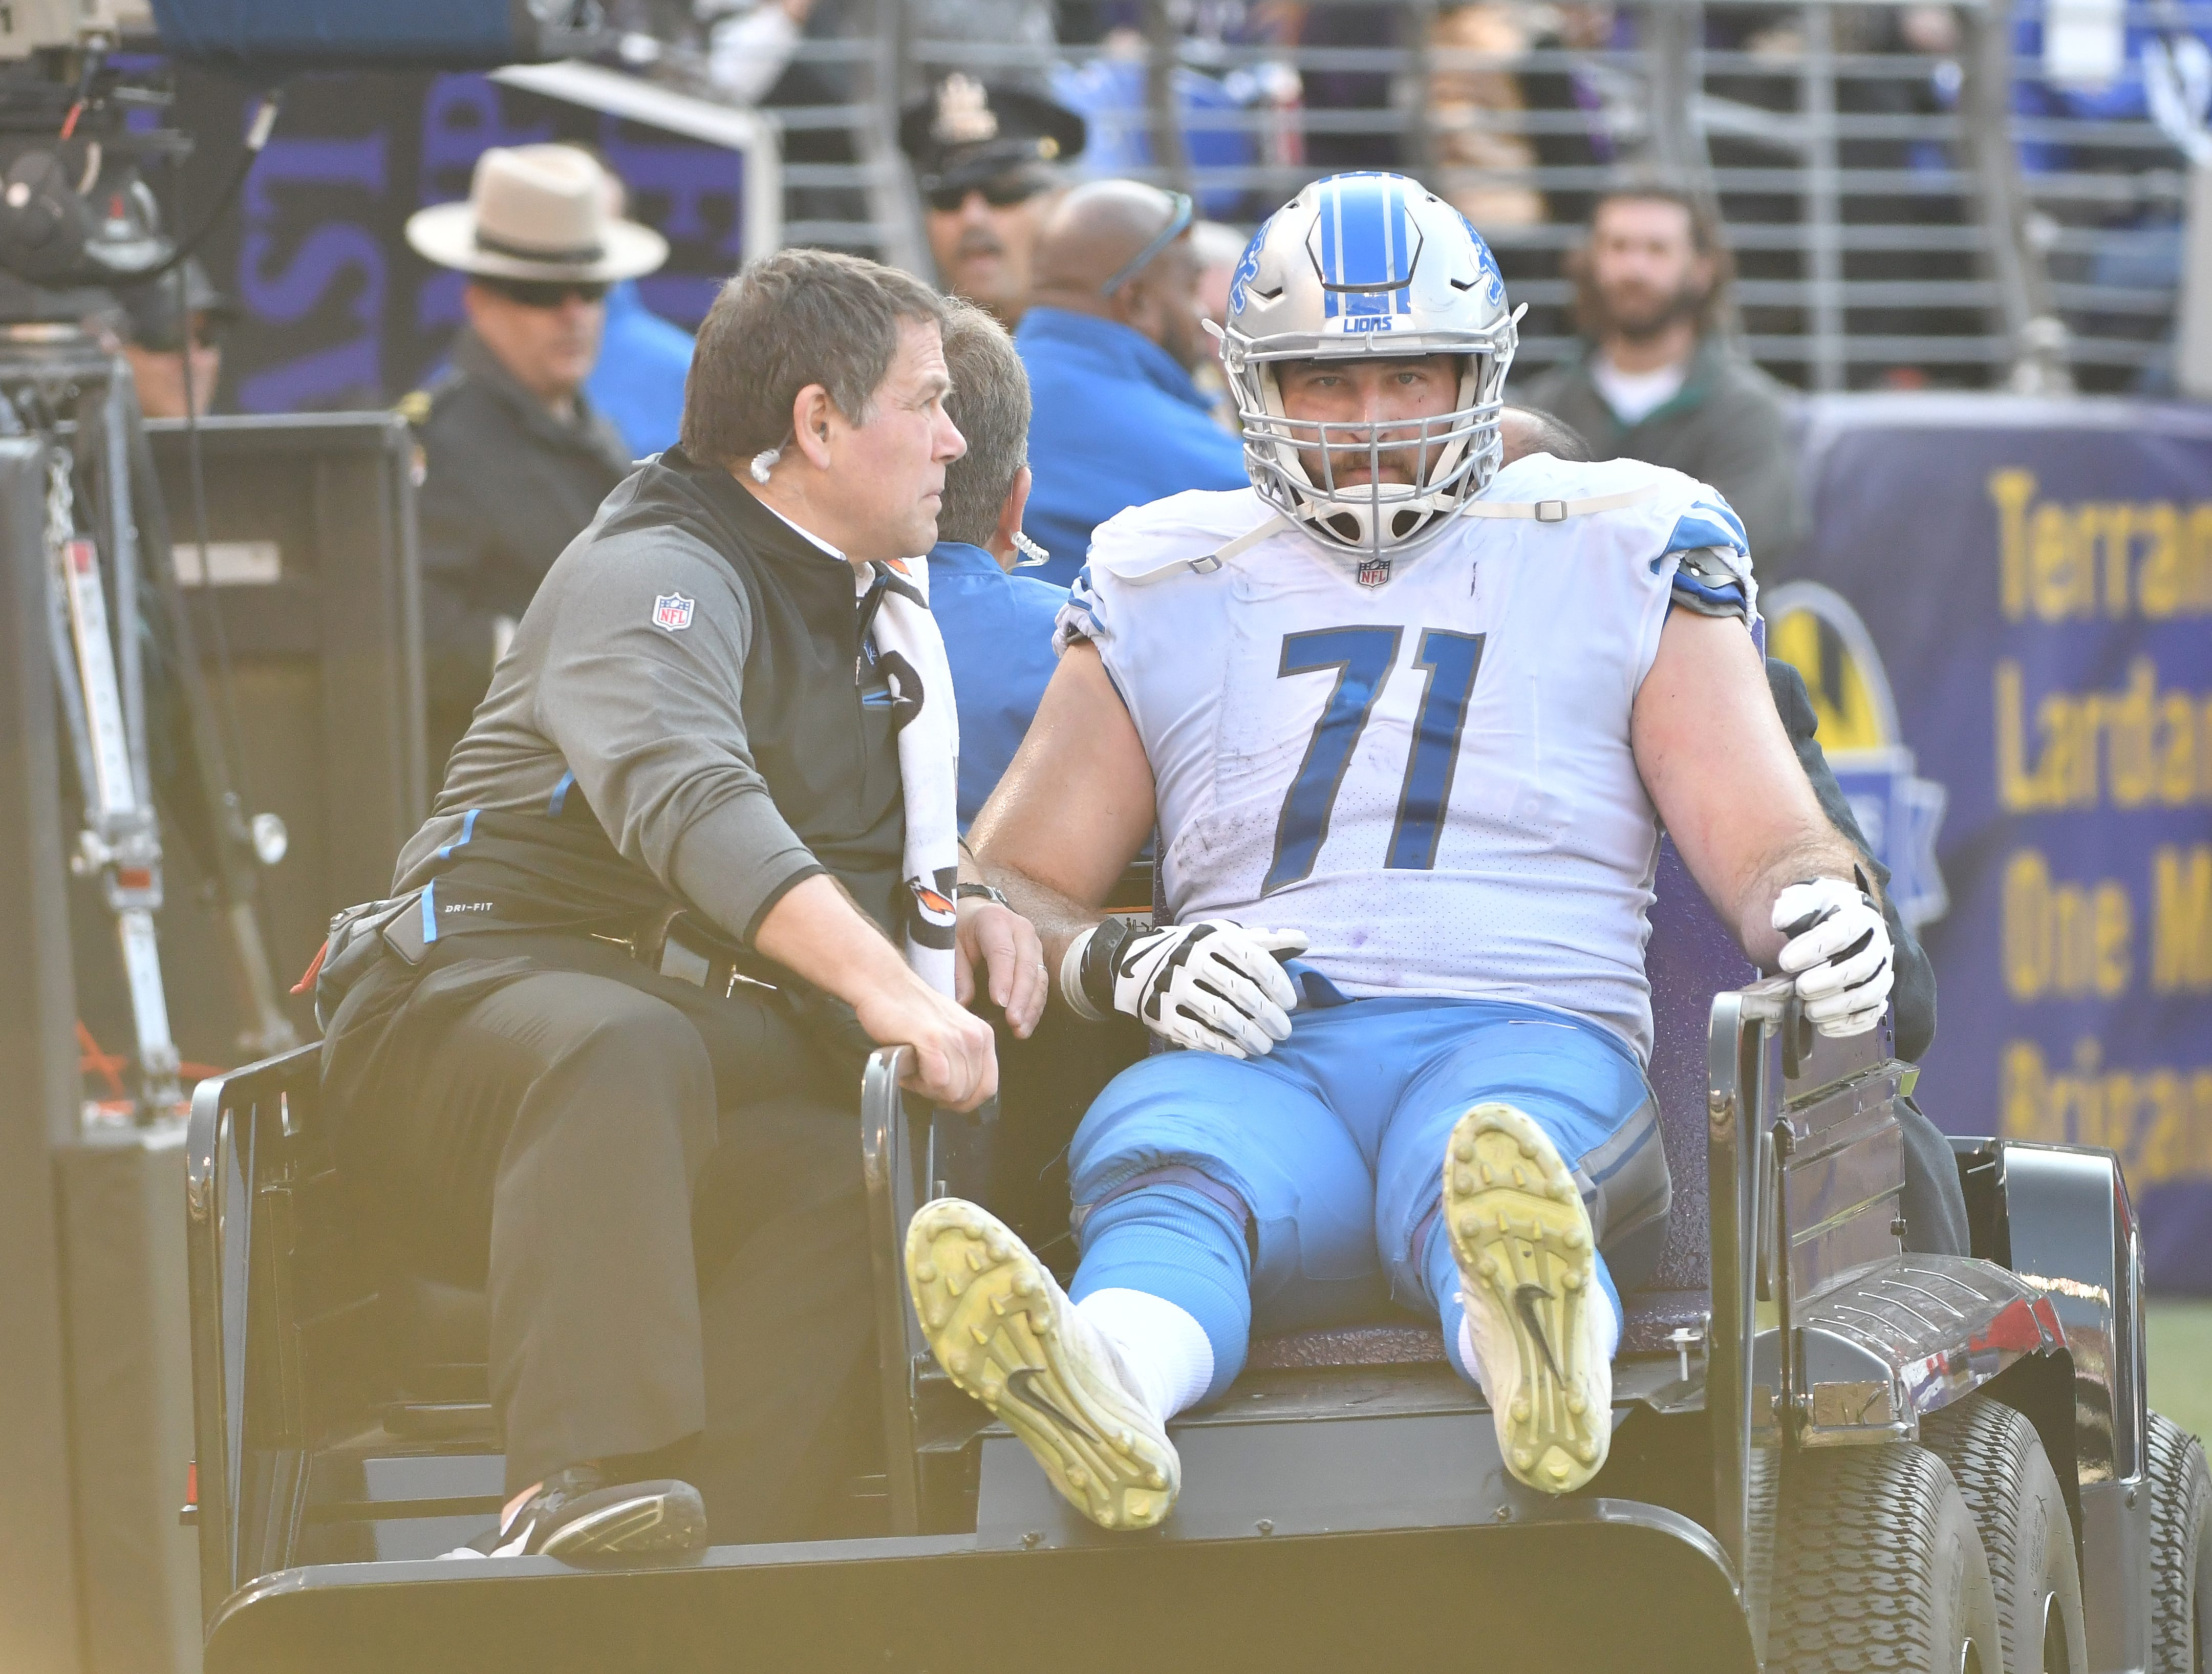 Lions' Rick Wagner is taken off the field in a cart